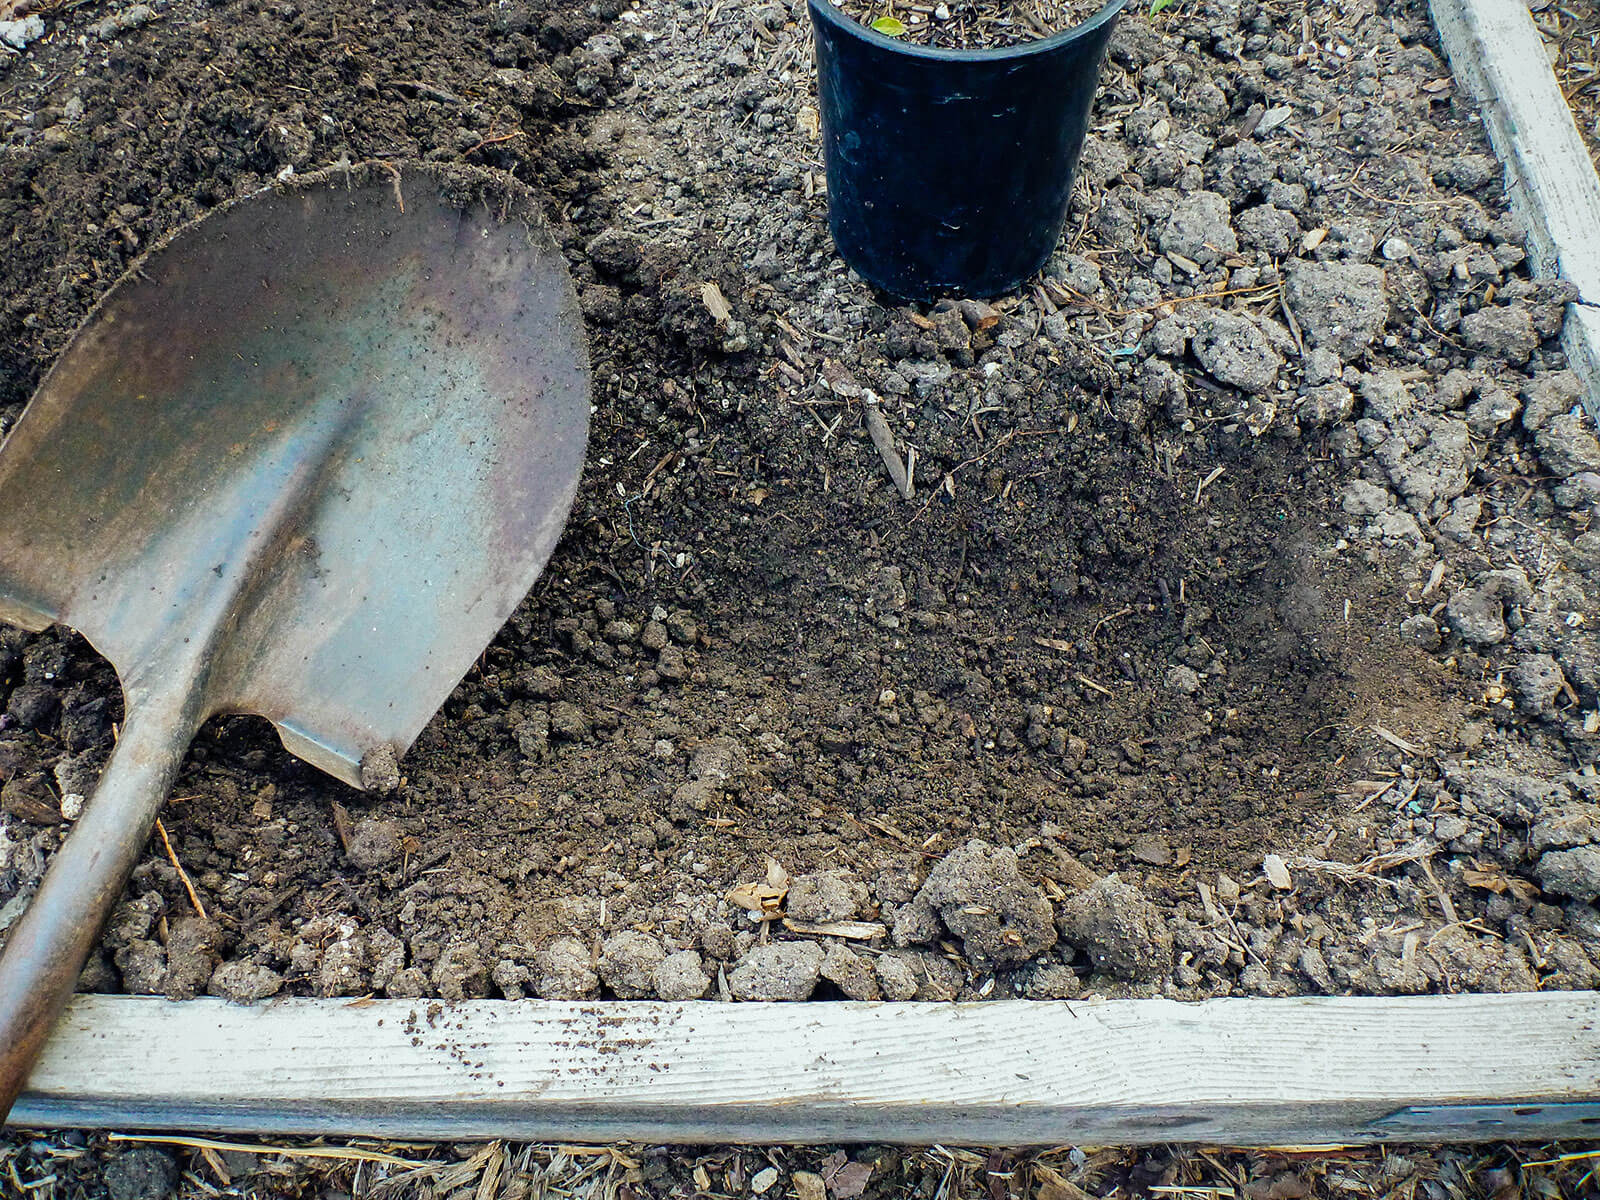 Dig a trench about 4 to 6 inches deep, with one end a bit deeper to hold the root ball